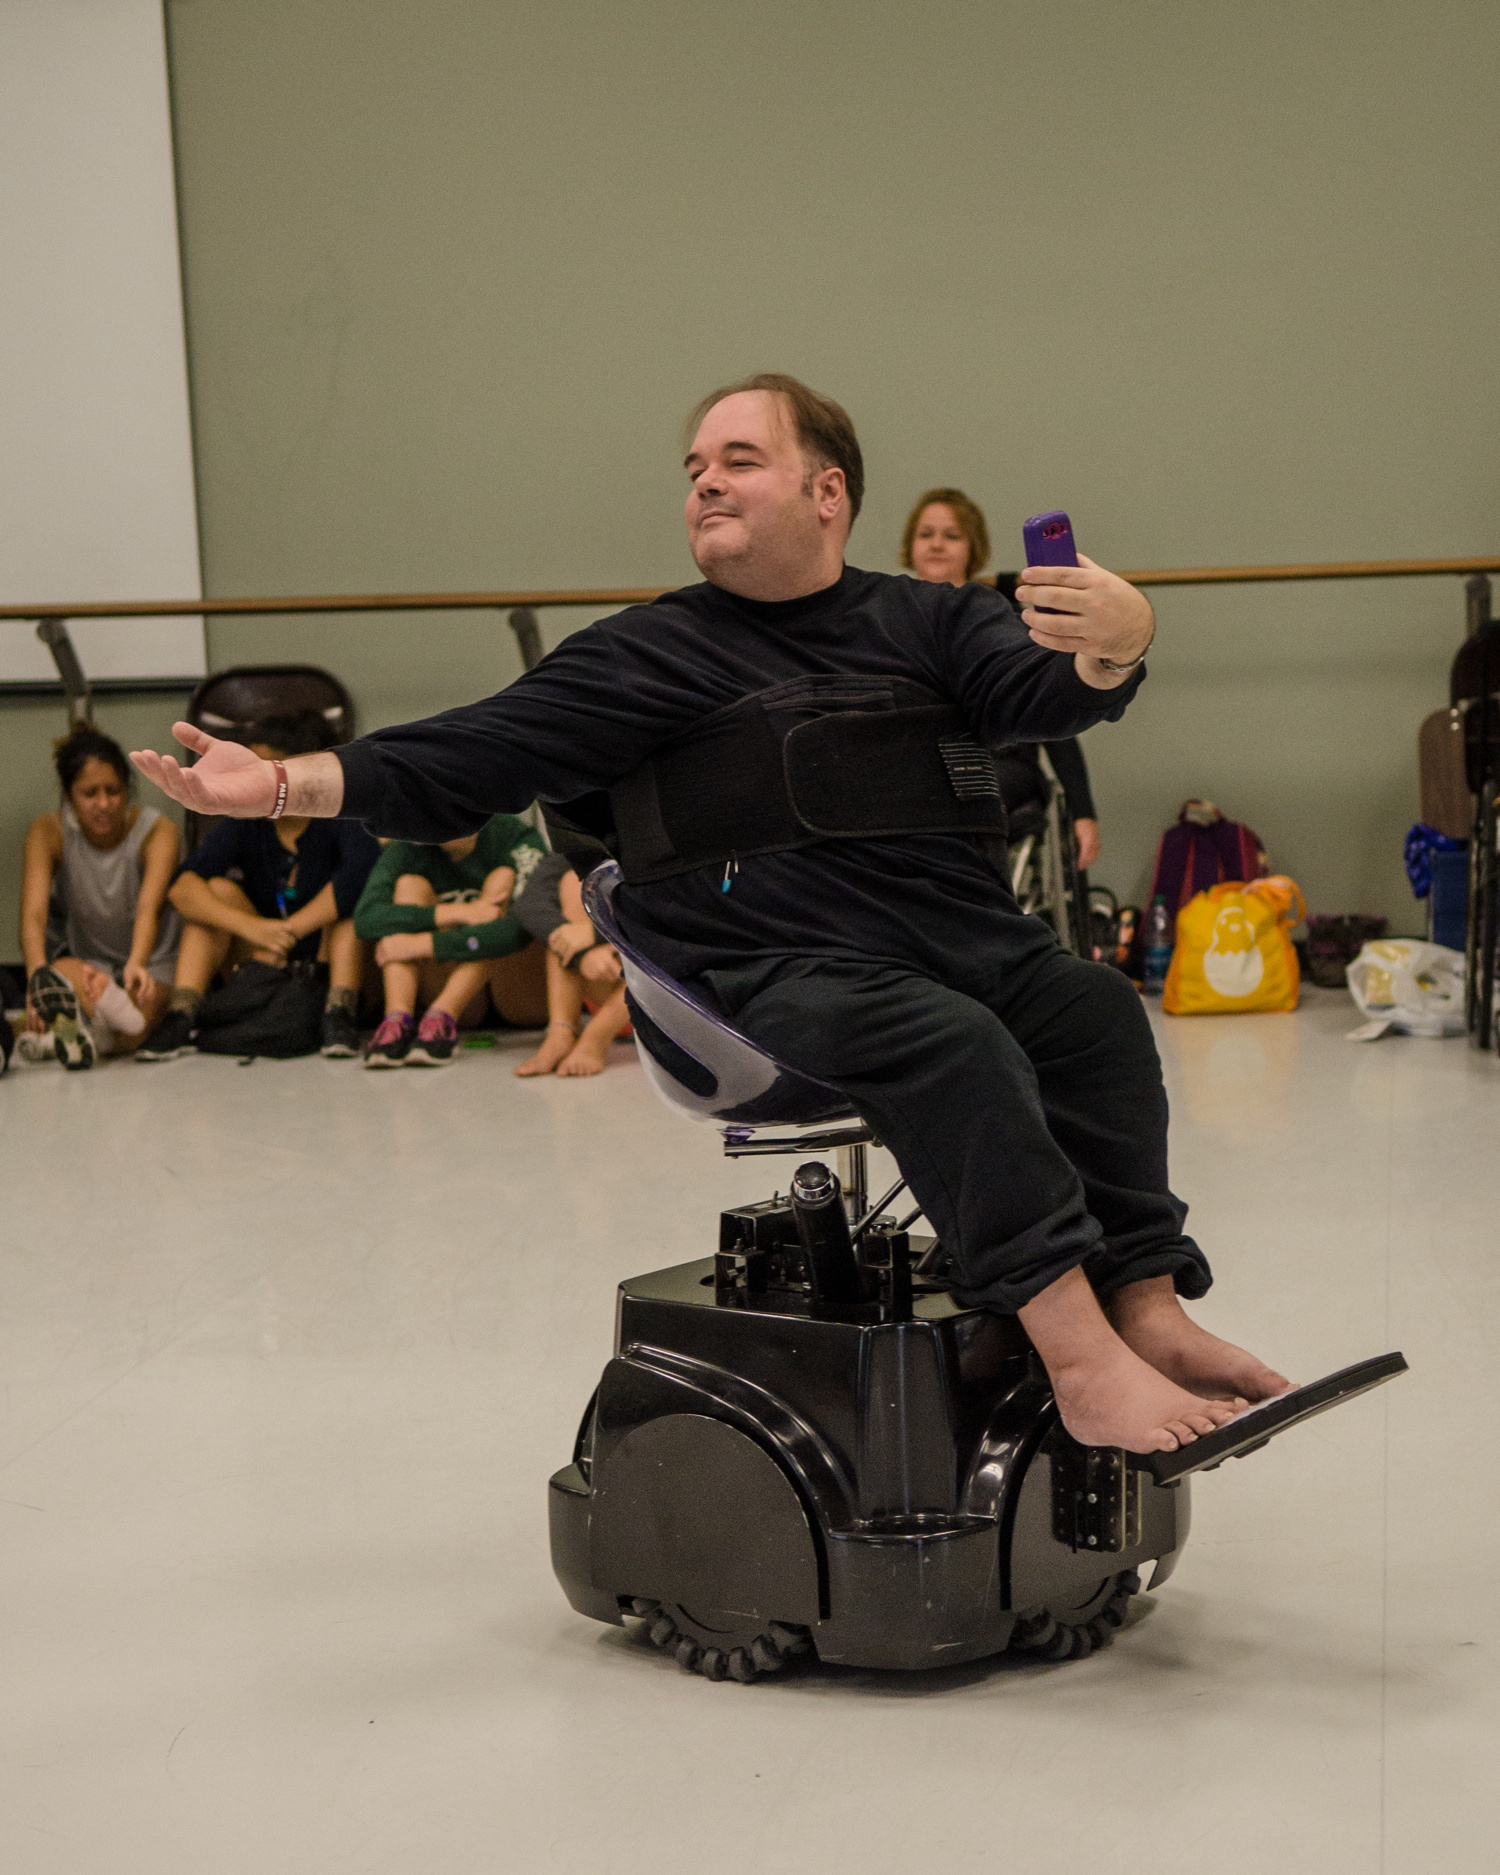 Frank Hull in the Rolling Dance Chair. Photo by Tom Kramer